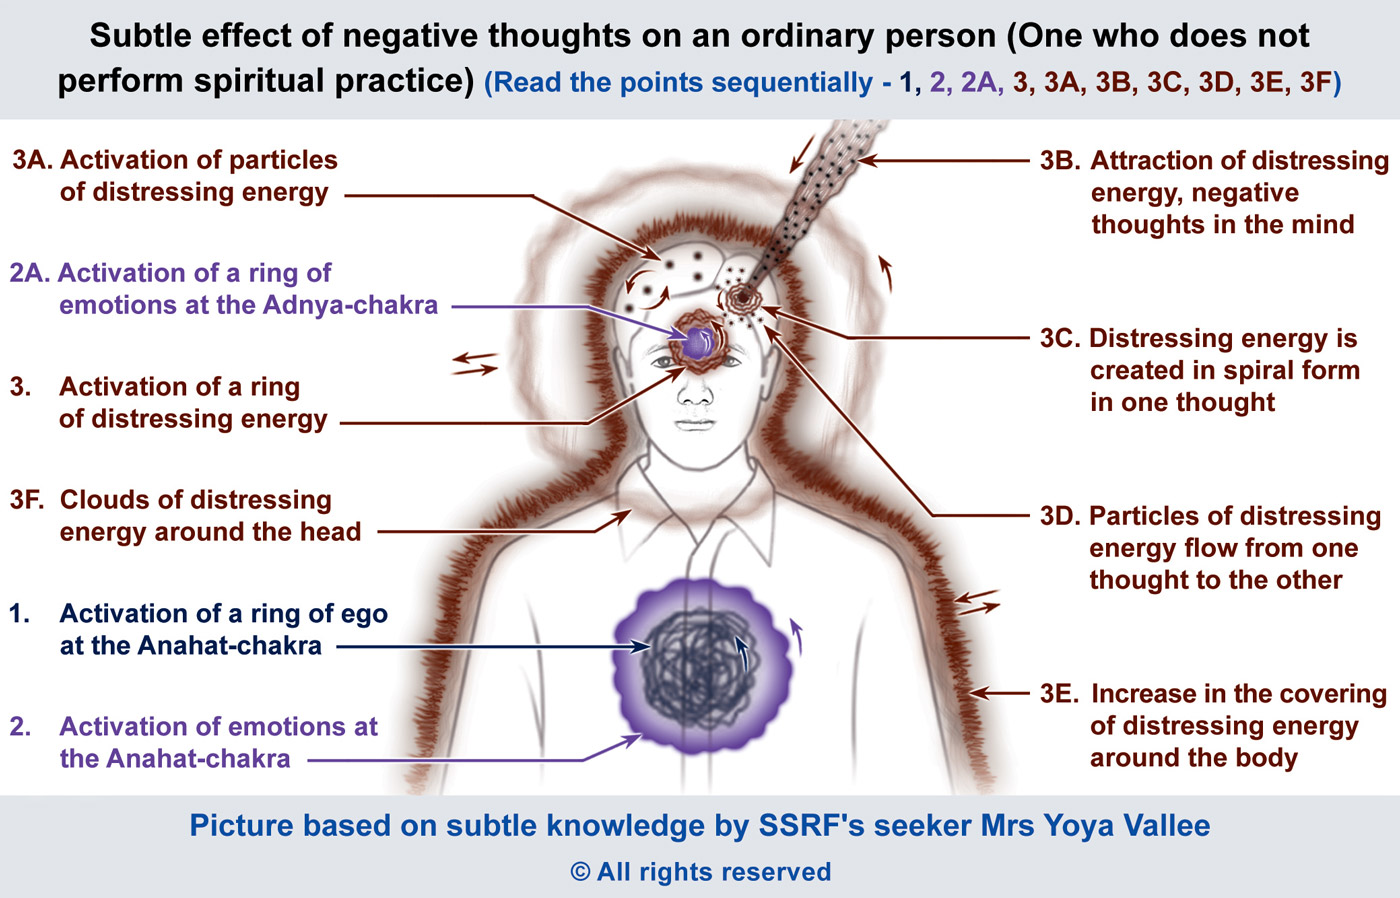 Subtle effect of negative thoughts on an ordinary person (One who does not perform spiritual practice)